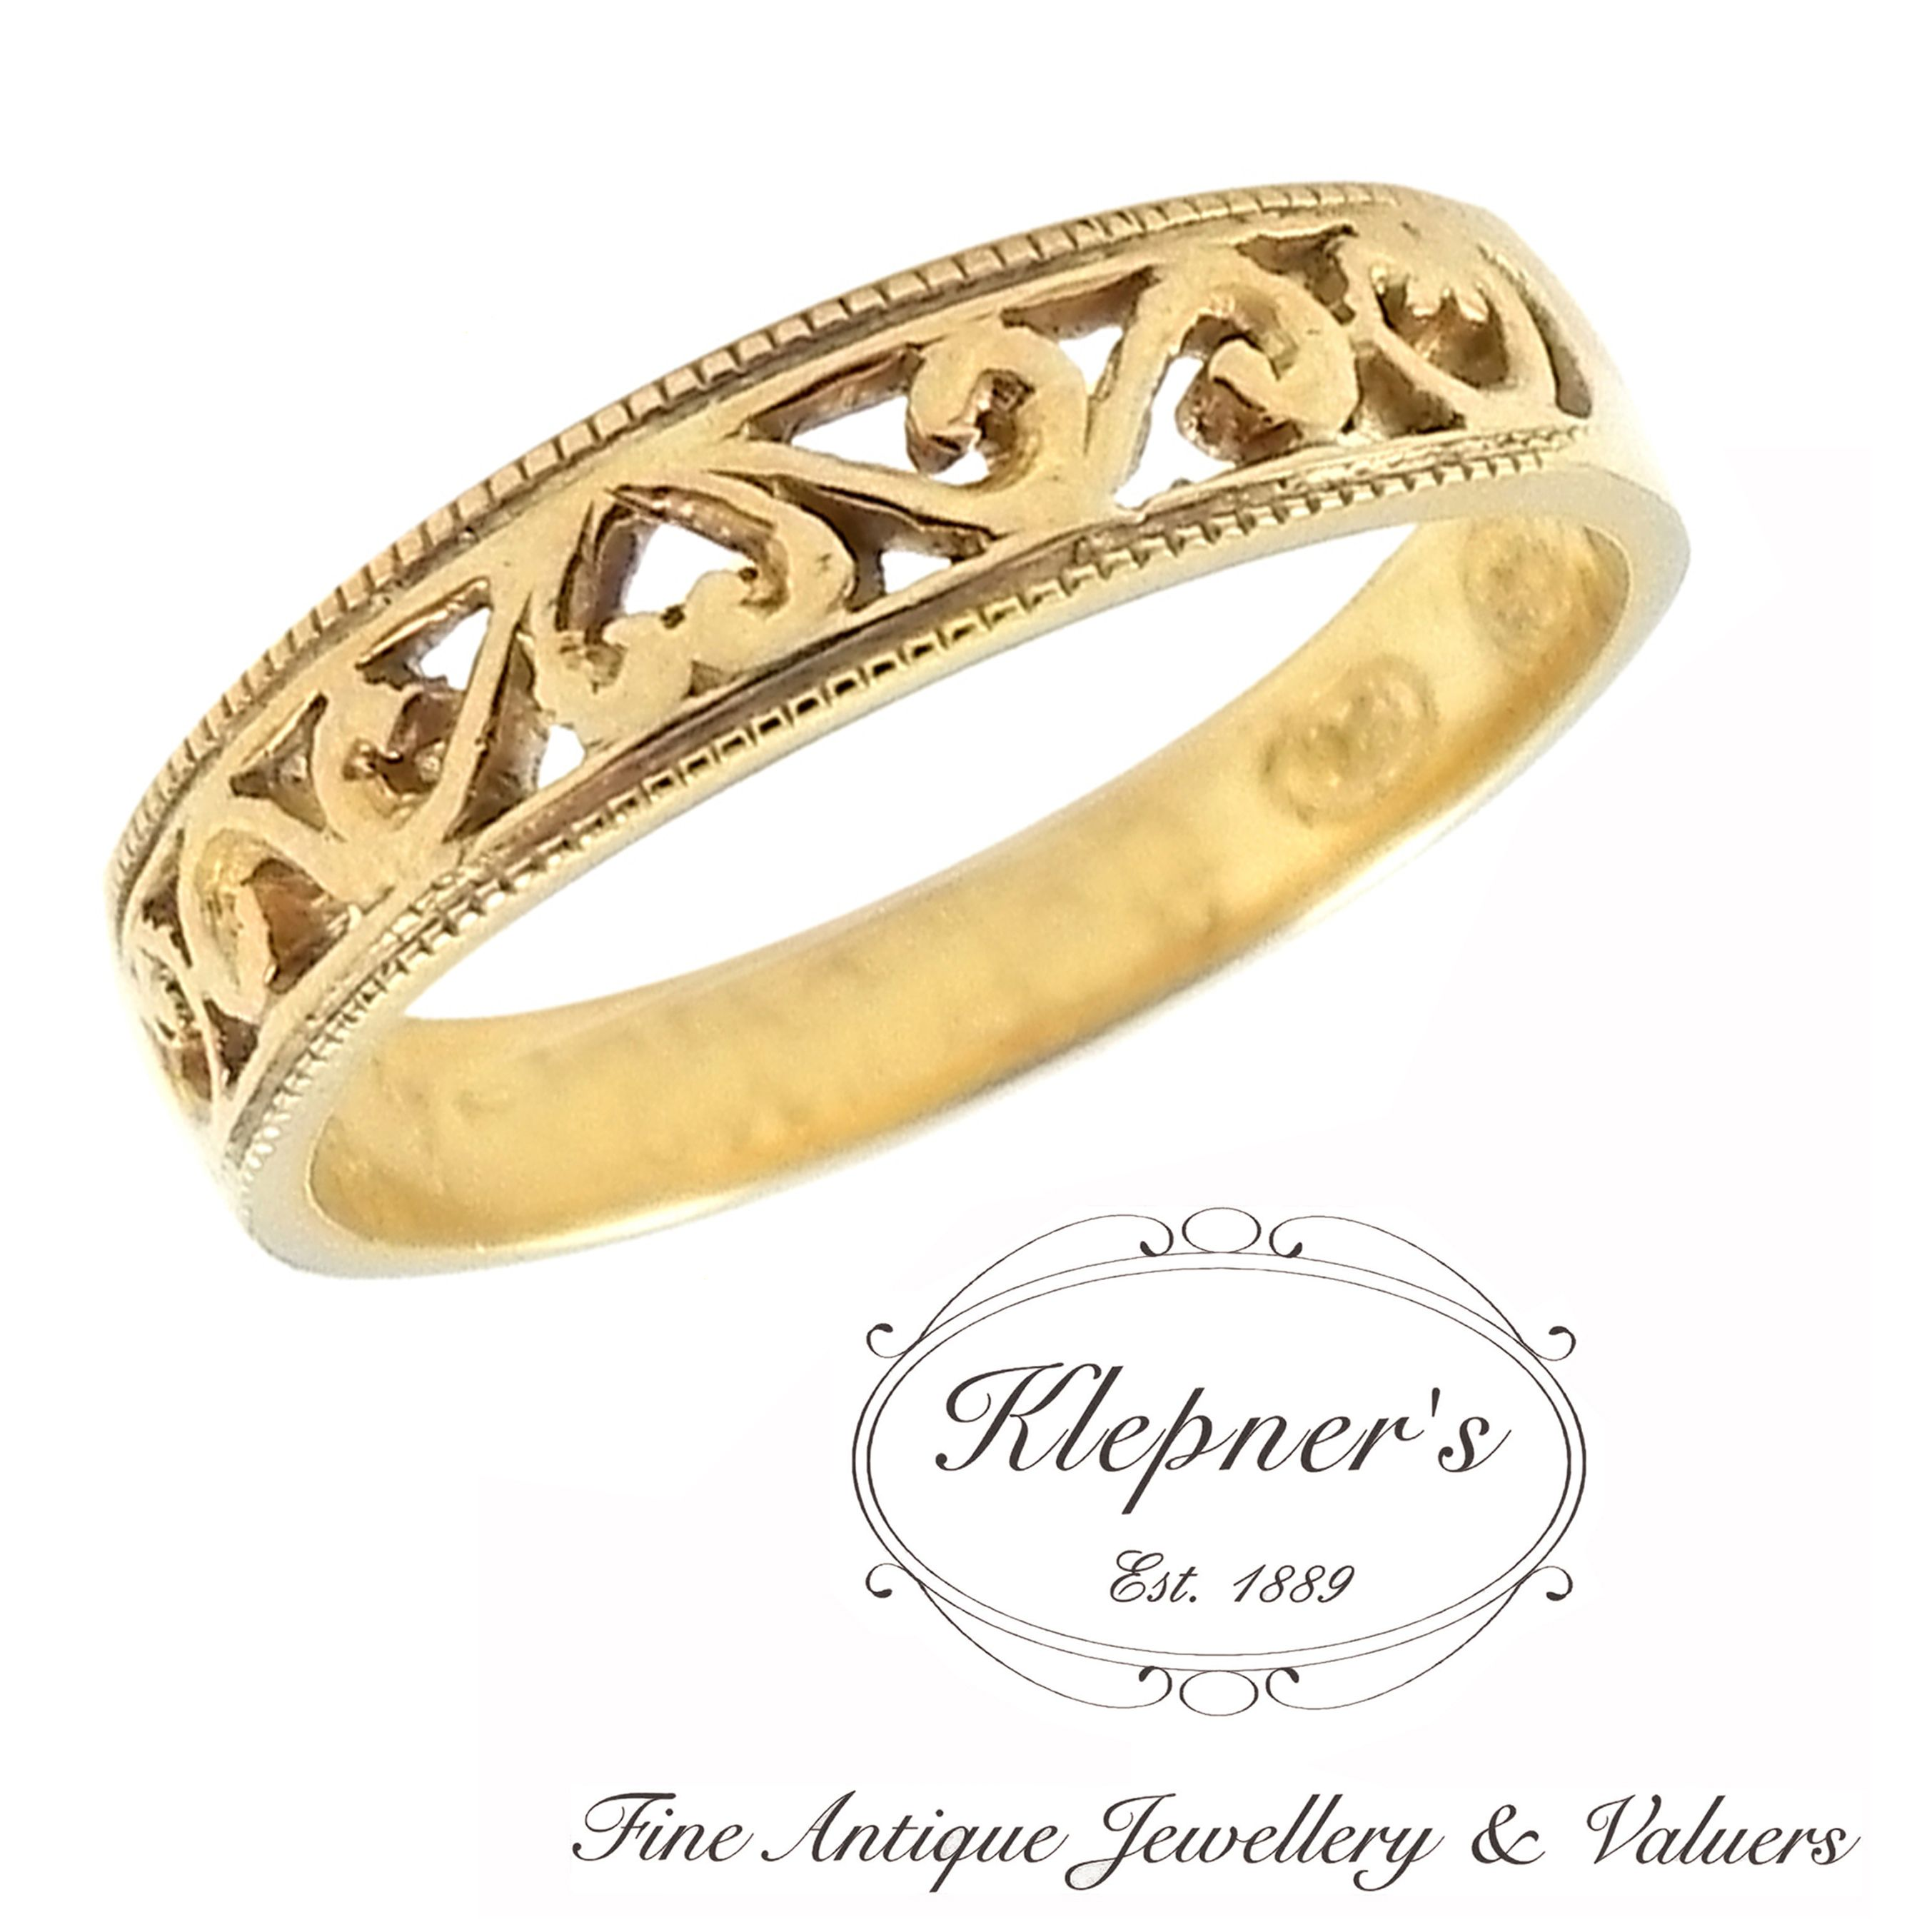 VINTAGE INSPIRED FILIGREE WEDDING BAND. Price shown is based on custom making this bespoke Vintage inspired filigree wedding band, made to order in 18ct yellow gold, for a finger size M.   This Vintage inspired wedding band can be crafted in 9ct or 18ct white, rose or yellow gold, platinum or sterling silver. Visit us at www.klepners.com.au